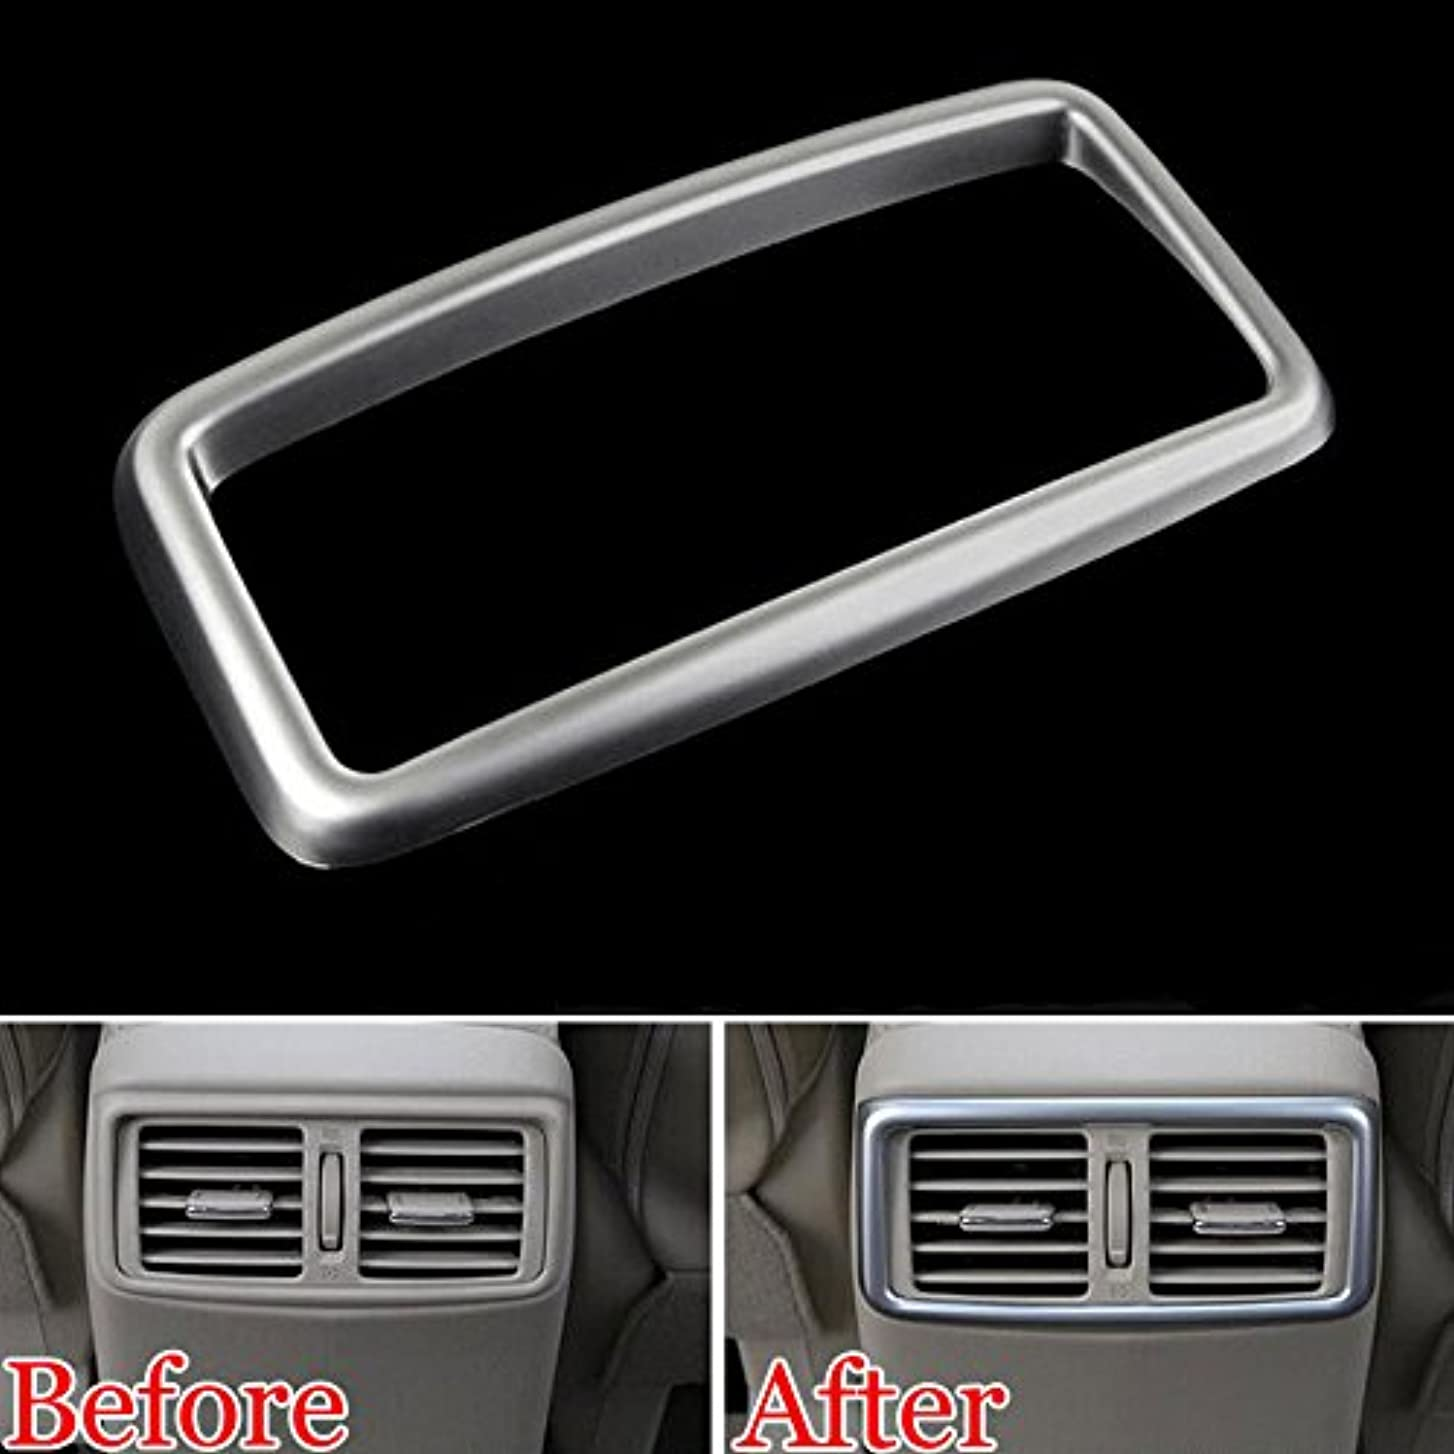 穀物受け入れる恐ろしいですJicorzo - Car Armrest Rear Air Condition Vent Outlet Cover Trim Car Styling Molding For Nissan Rogue X-Trail 2014-2017 Nissan Qashqai J11